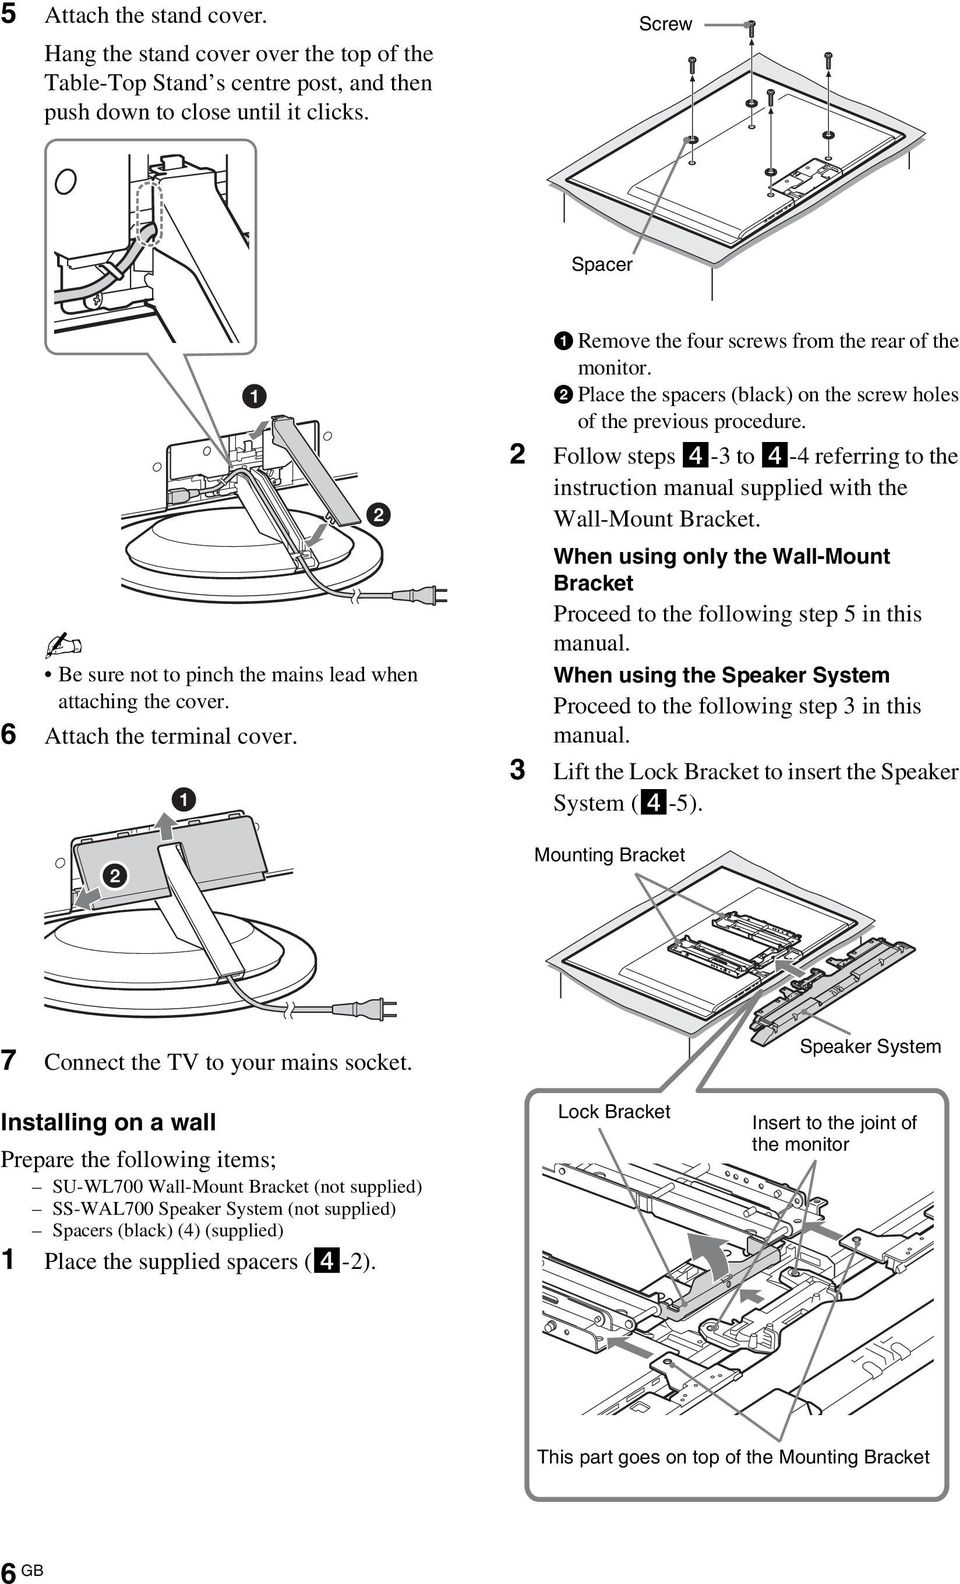 2 Follow steps 4-3 to 4-4 referring to the instruction manual supplied with the Wall-Mount Bracket. Be sure not to pinch the mains lead when attaching the cover. 6 Attach the terminal cover.